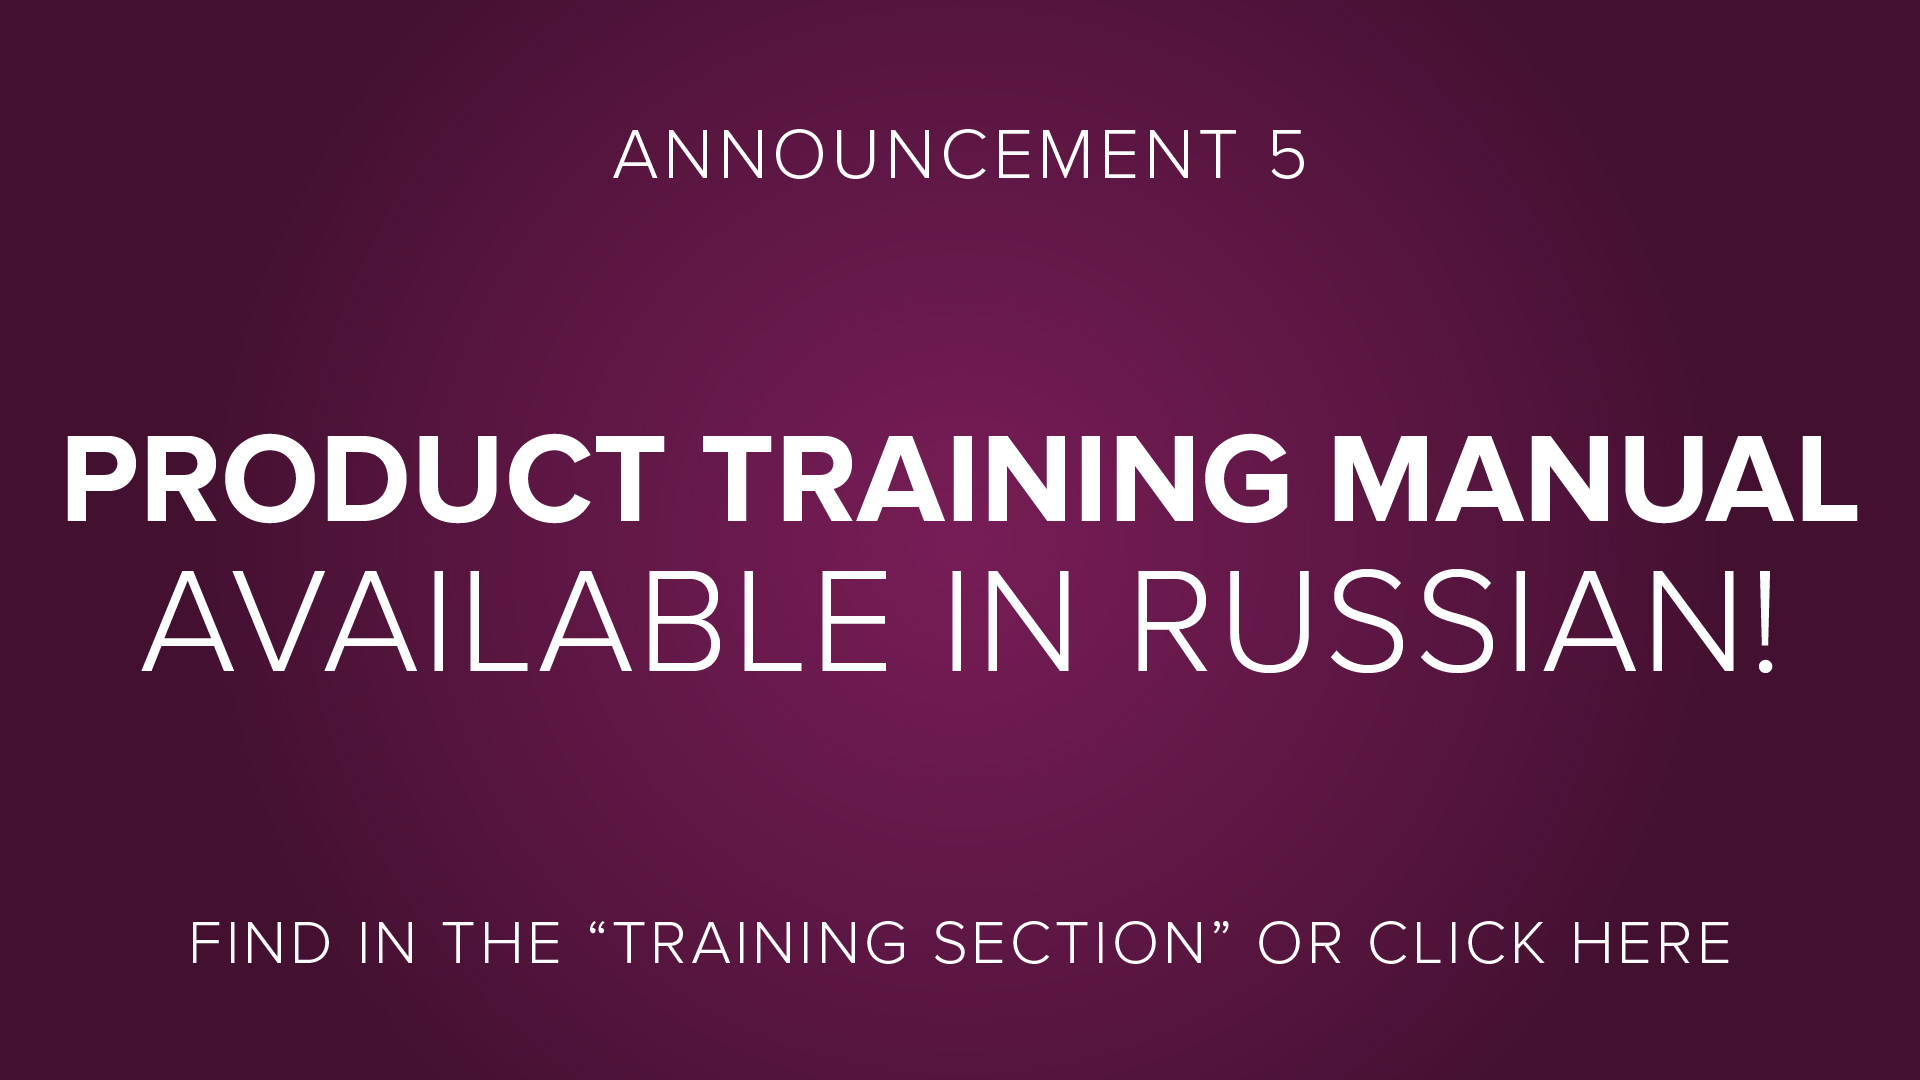 Announcement Buttons_05 Product Training Manual Russian.jpg